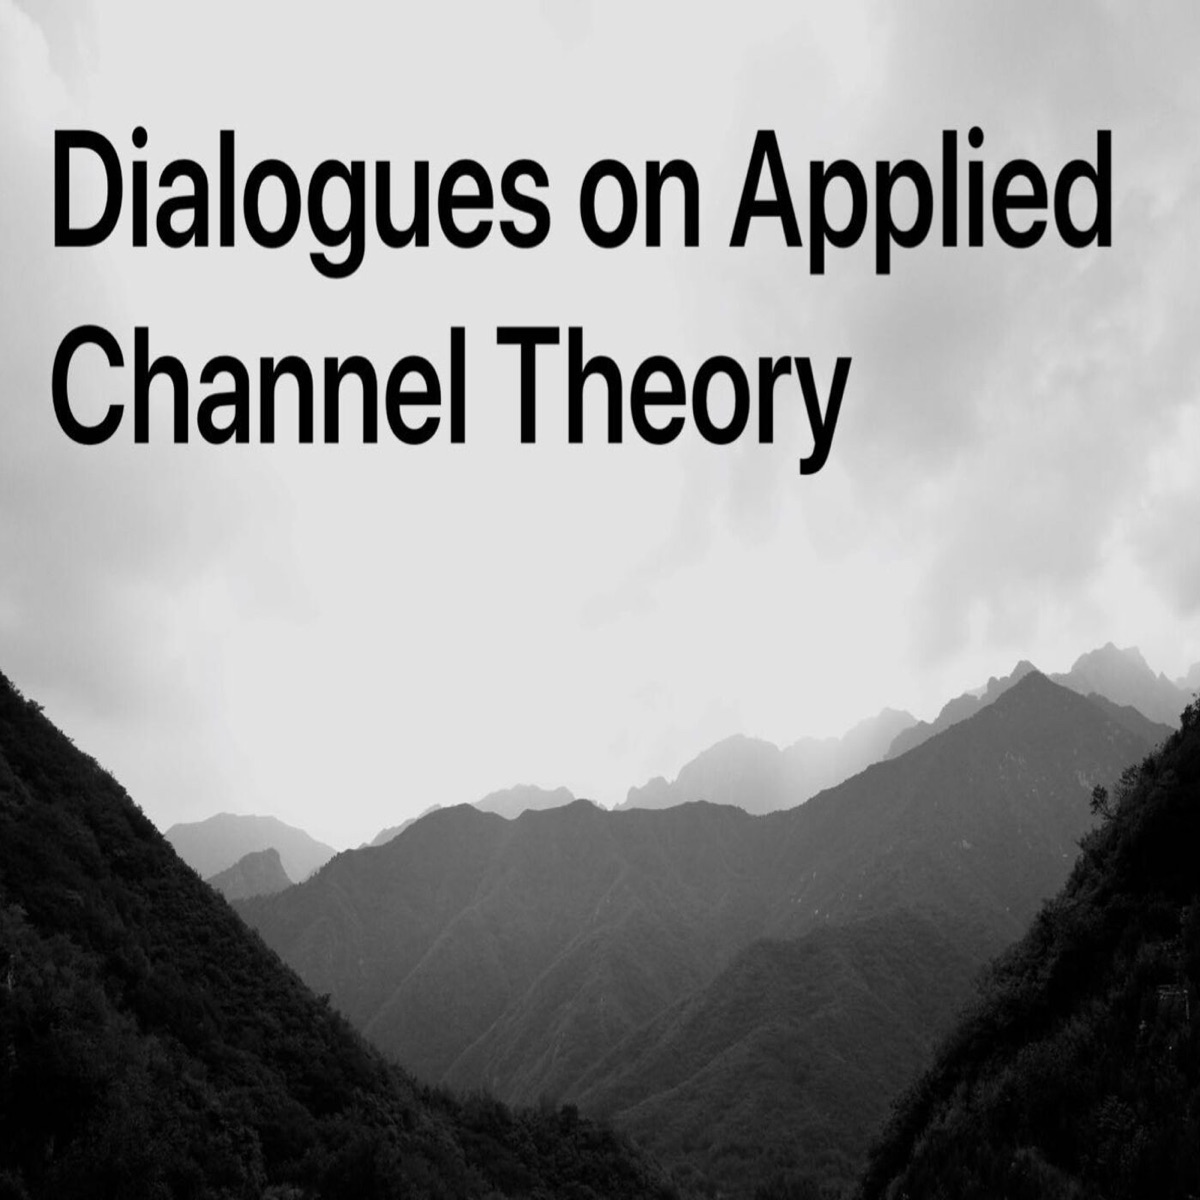 Dialogues on Applied Channel Theory